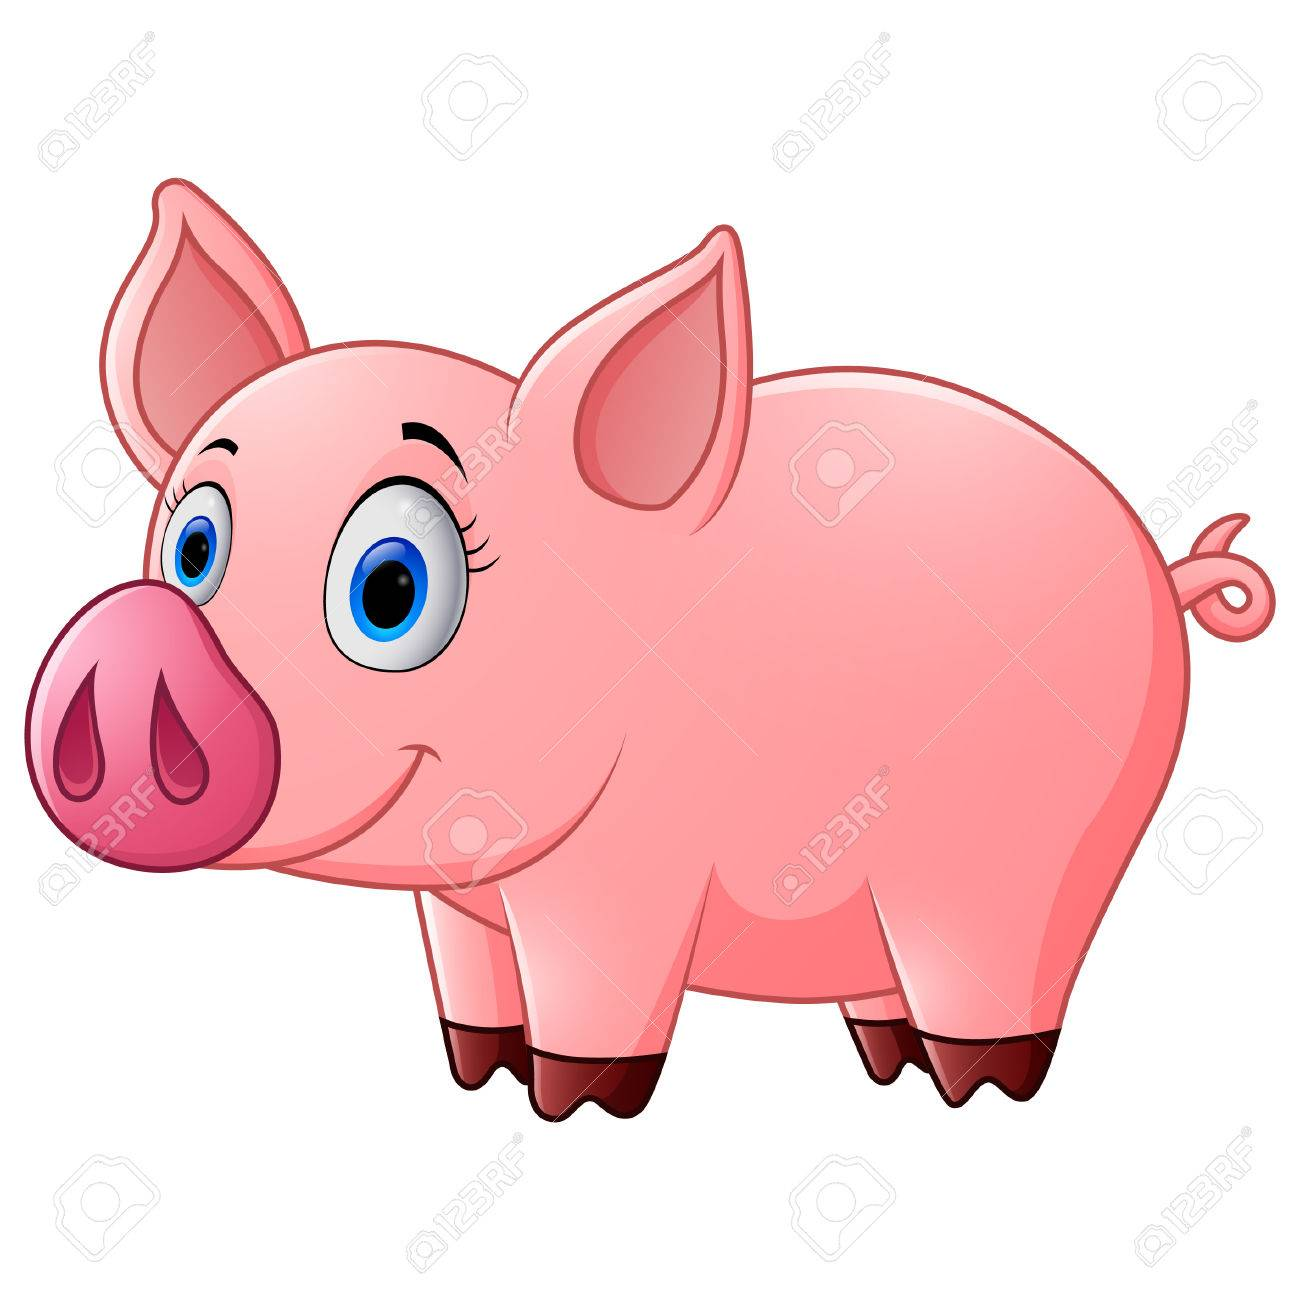 hight resolution of 1300x1300 cute baby pig cartoon stock photo picture and royalty free image